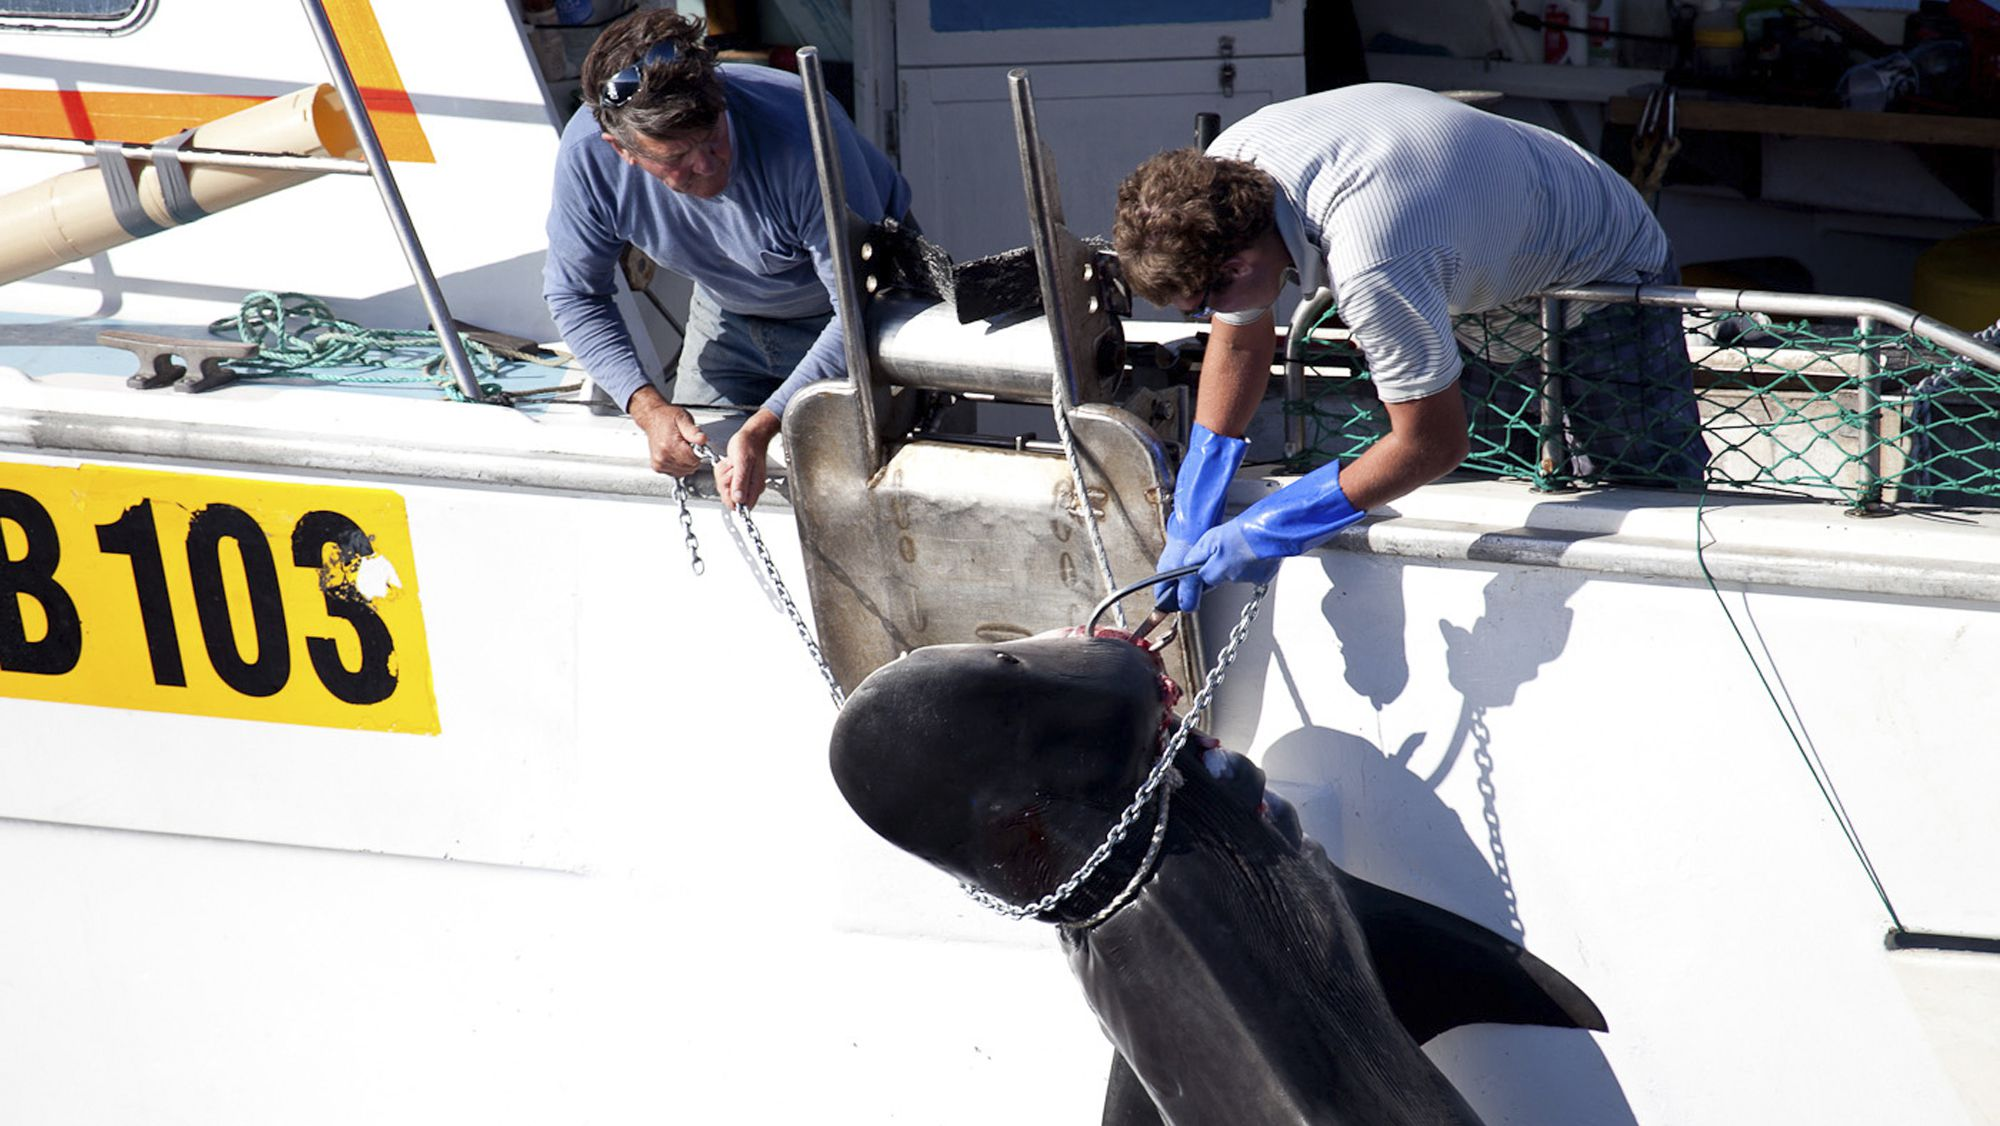 shark cull great white tiger shark attack jaws killed bycatch bite In this photo released by Sea Shepherd, a male tiger shark is hauled onto a fishing boat off Moses Rock on the Western Australian coast Saturday, Feb. 22, 2014. The shark catch was part of Western Australia's controversial shark cull policy. The government began placing baited hooks on drum lines off popular beaches in the state capital Perth and to the south to kill white, bull and tiger sharks over three meters (10 feet) long. The policy is a response to seven fatal shark attacks in Australia's southwest in three years. (AP Photo/Sea Shepherd